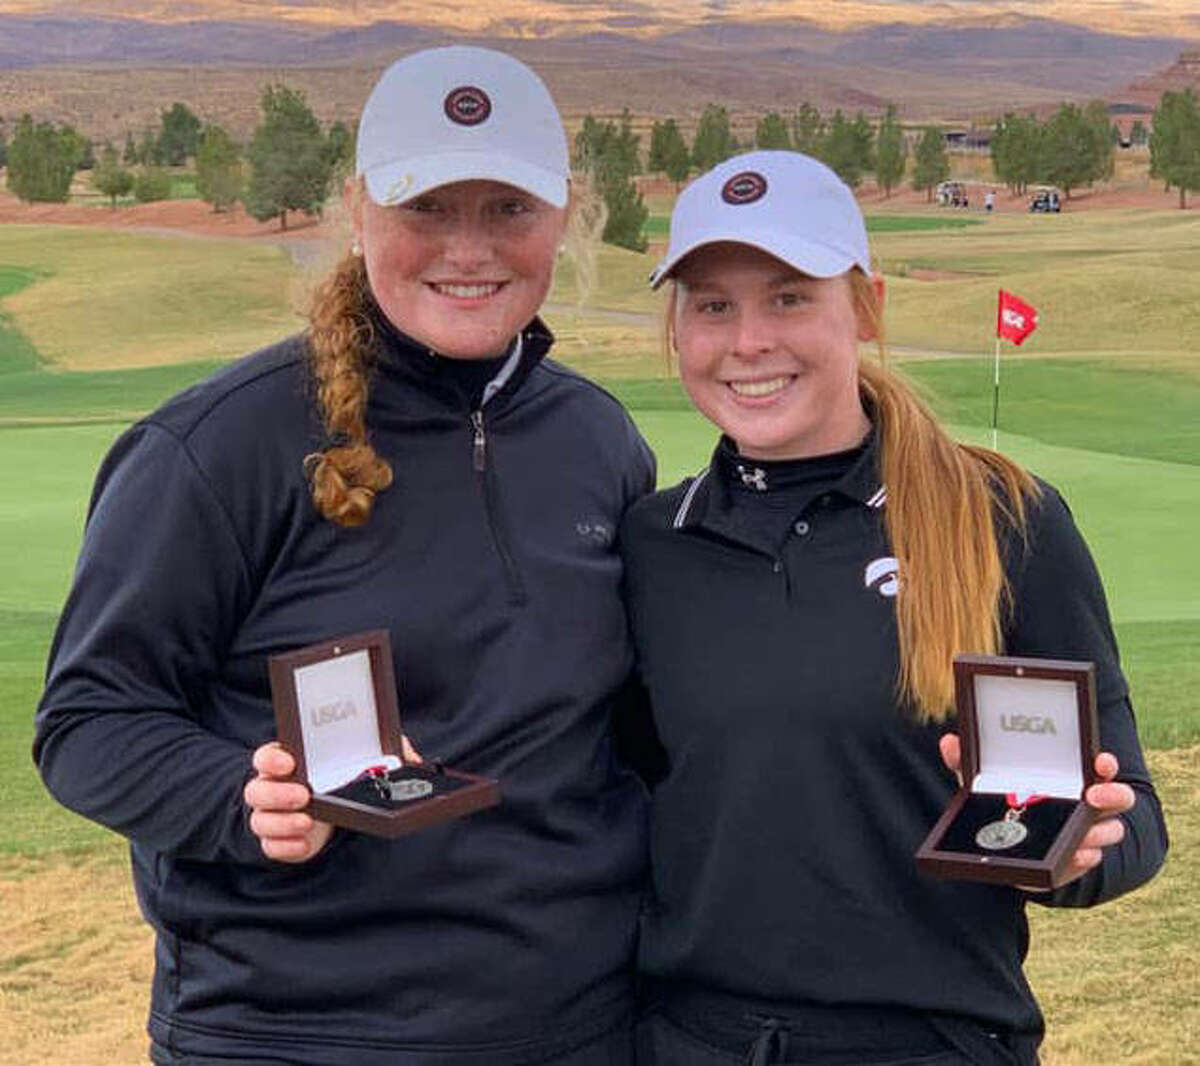 Marquette Catholic junior Gracie Piar (left) and Edwardsville junior Riley Lewis show off their championship medals from the 2021 U.S. Women's Amateur Four-Ball Qualifying golf tourney Monday at SunRiver Golf Club in St. George, Utah.